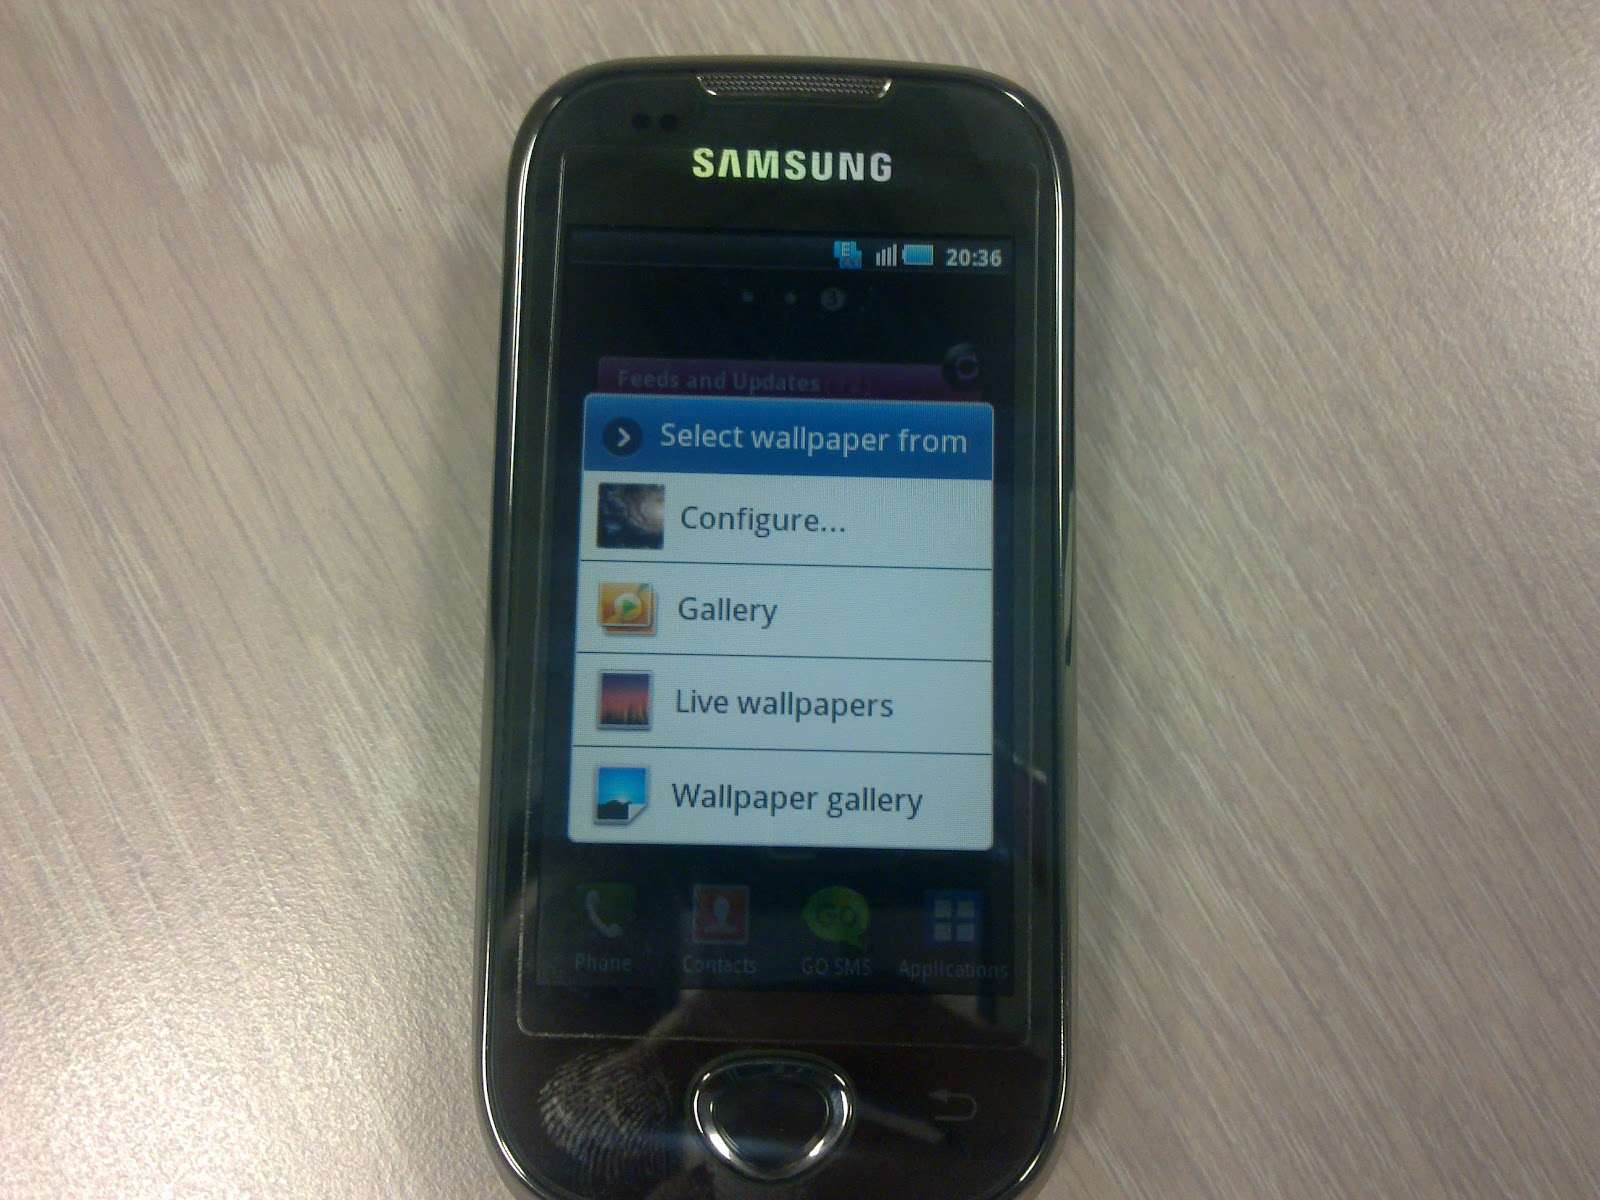 Add 1: Samsung Widgets 1, As You Can See, Android 2.2 On, Android 2.1 Offers Live